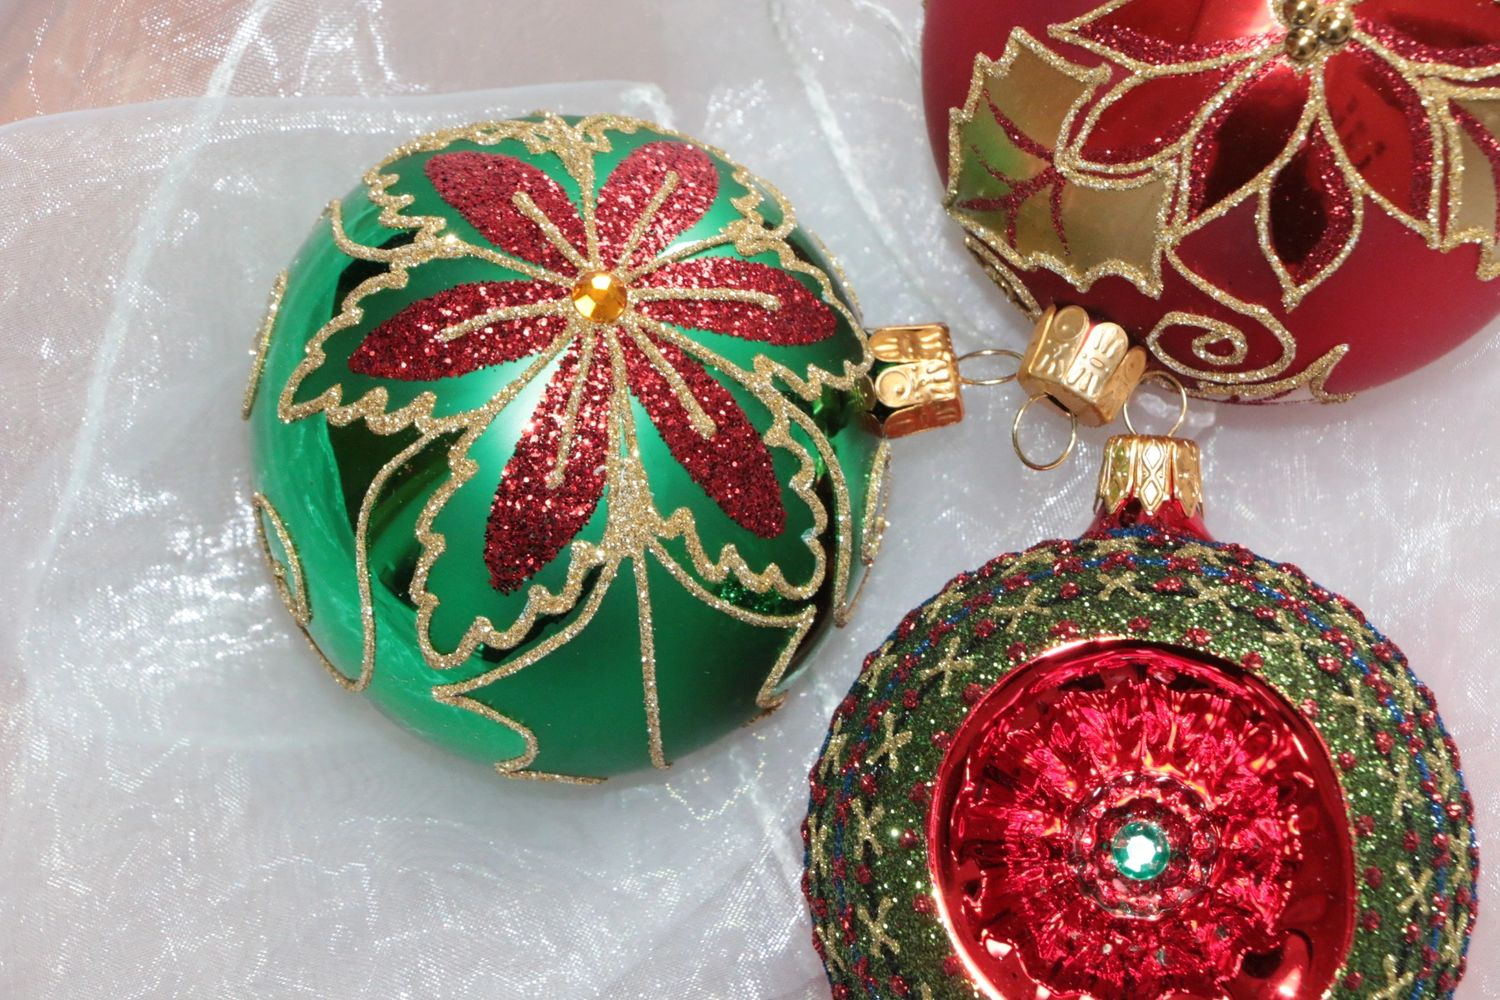 Christmas ornaments made of glass in Czech Republic and Slovakia, hand-blown and hand-painted.